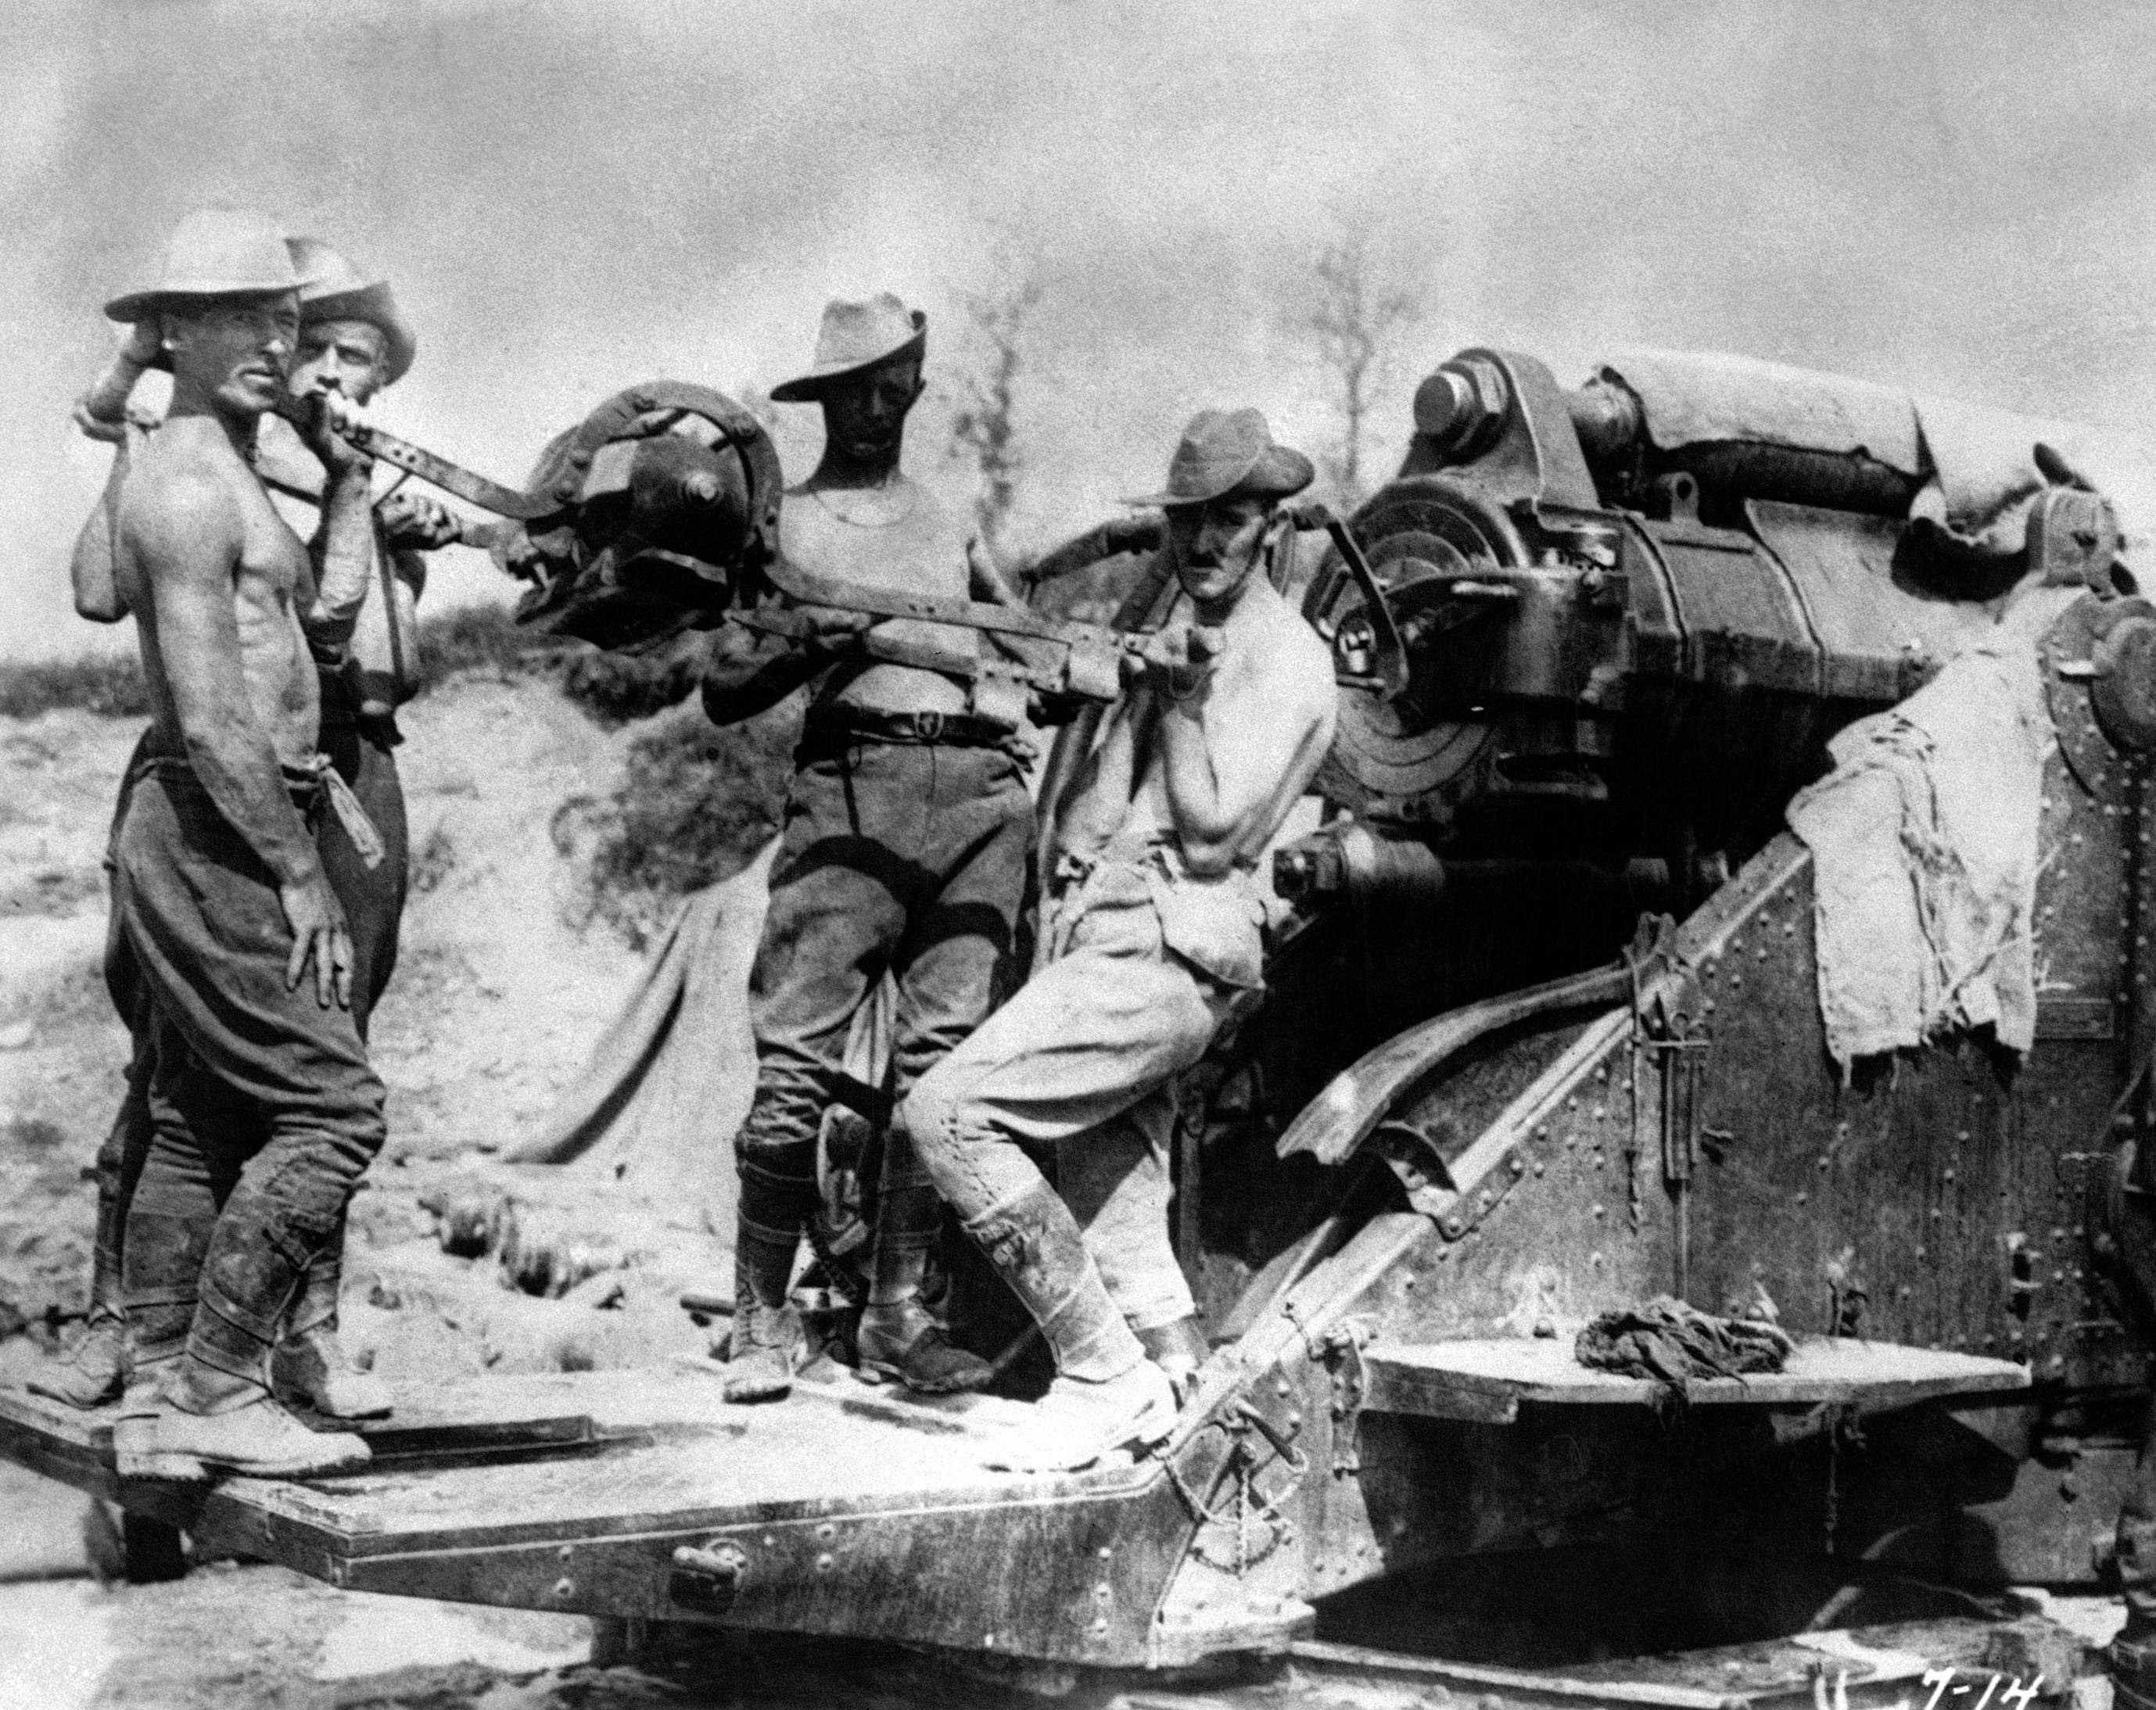 56 OF 100: In this 1916 file photo, Australian artillery soldiers operate a large caliber gun at the Somme front in France during World War I.